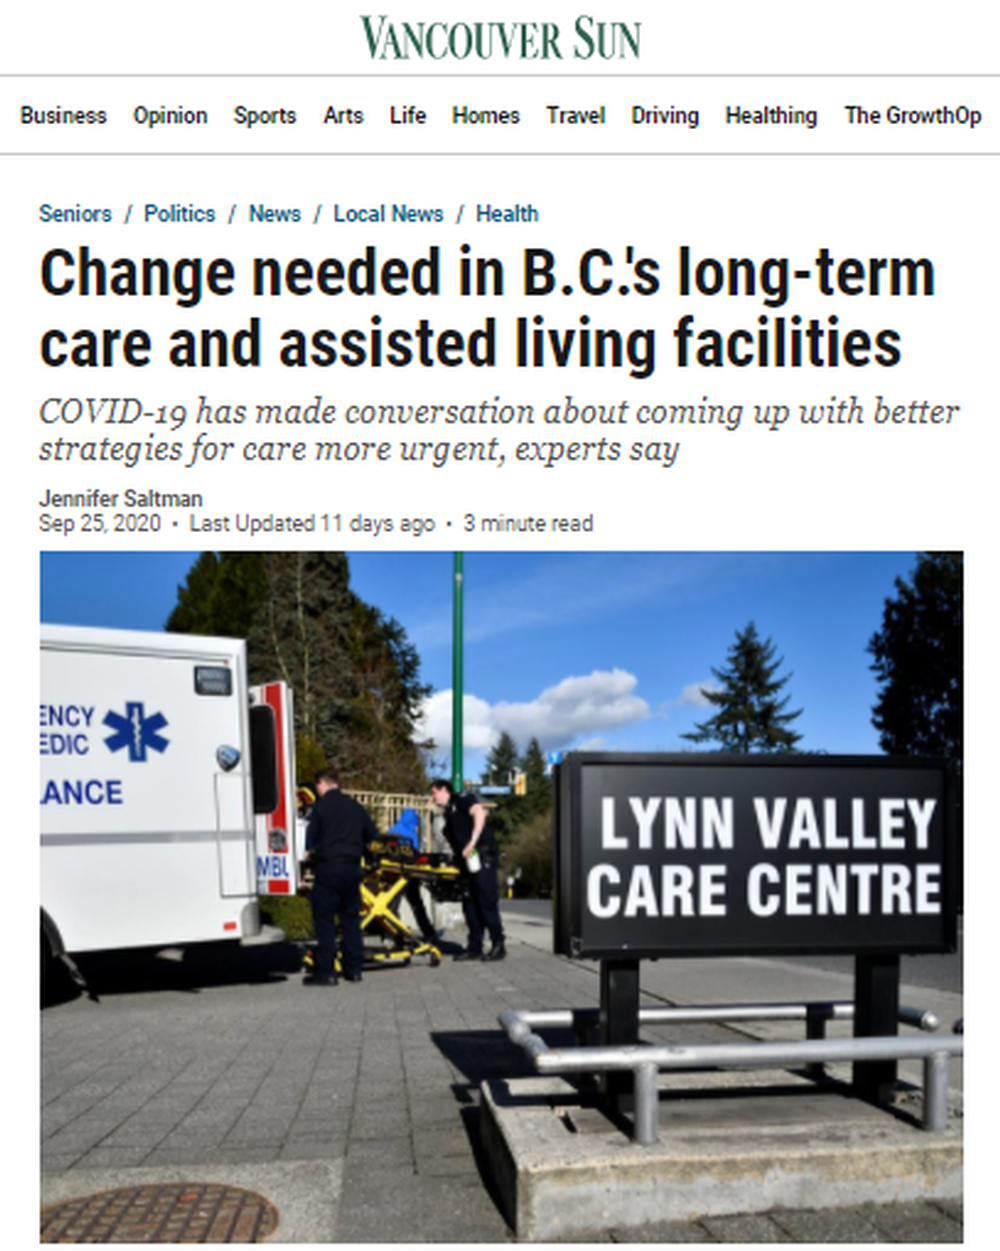 Change-necessary-in-B-C-s-long-term-care-assisted-living-facilities-Vancouver-Sun.